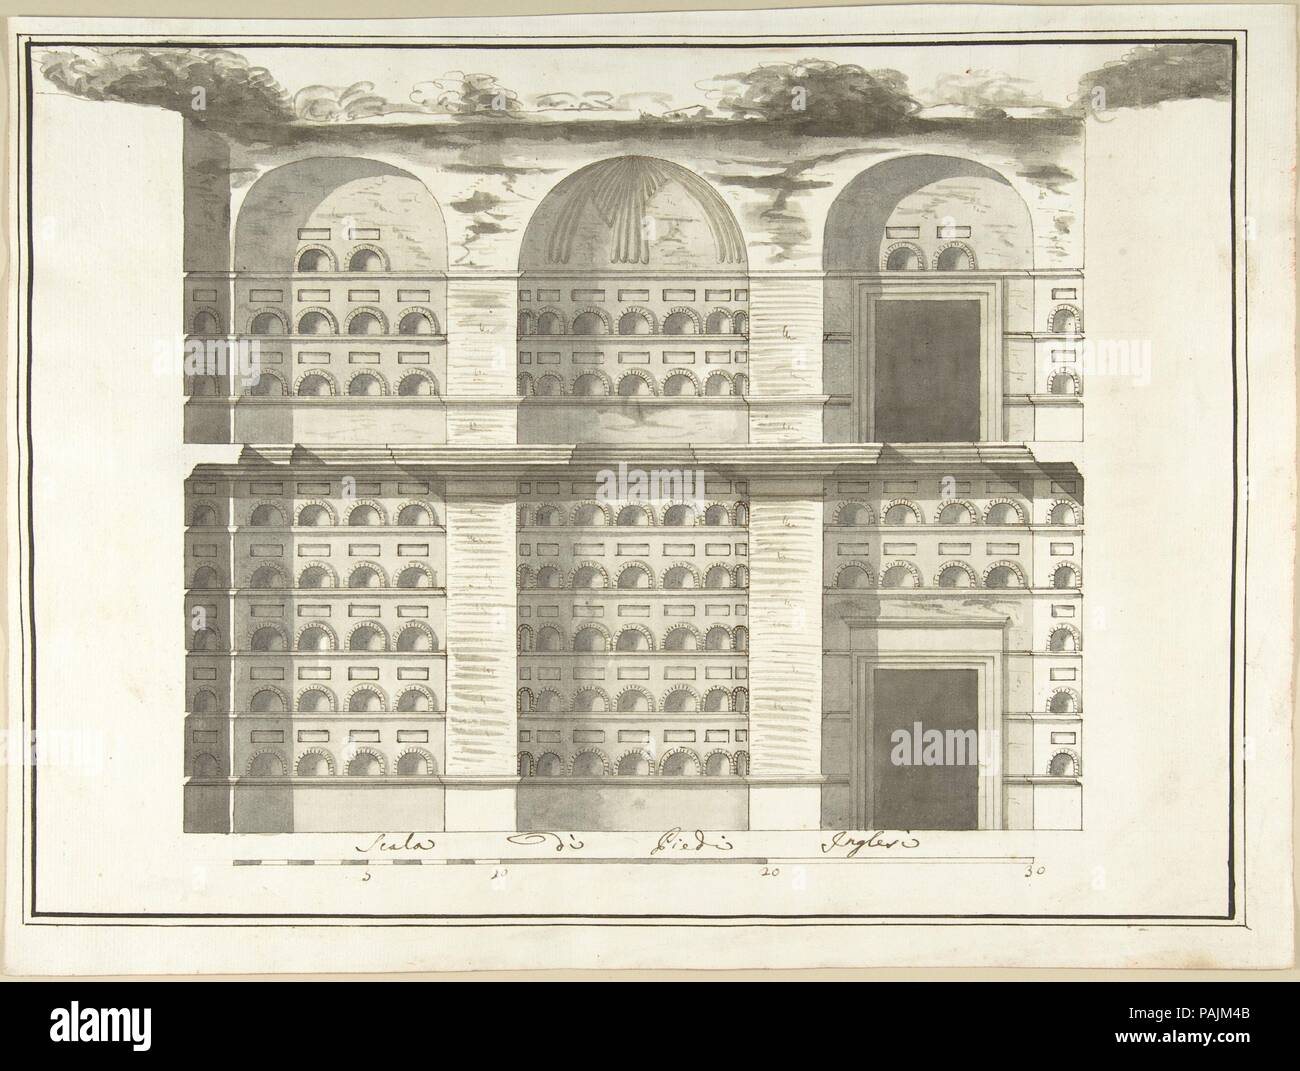 Section (Interior Elevation) of a Columbarium. Artist: Pietro Paolo Coccetti (Cocchetti) (Italian, documented Rome, 1710-1727). Dimensions: 13 1/8 x 17 5/8in. (33.4 x 44.8cm). Date: 1710-27. Museum: Metropolitan Museum of Art, New York, USA. - Stock Image